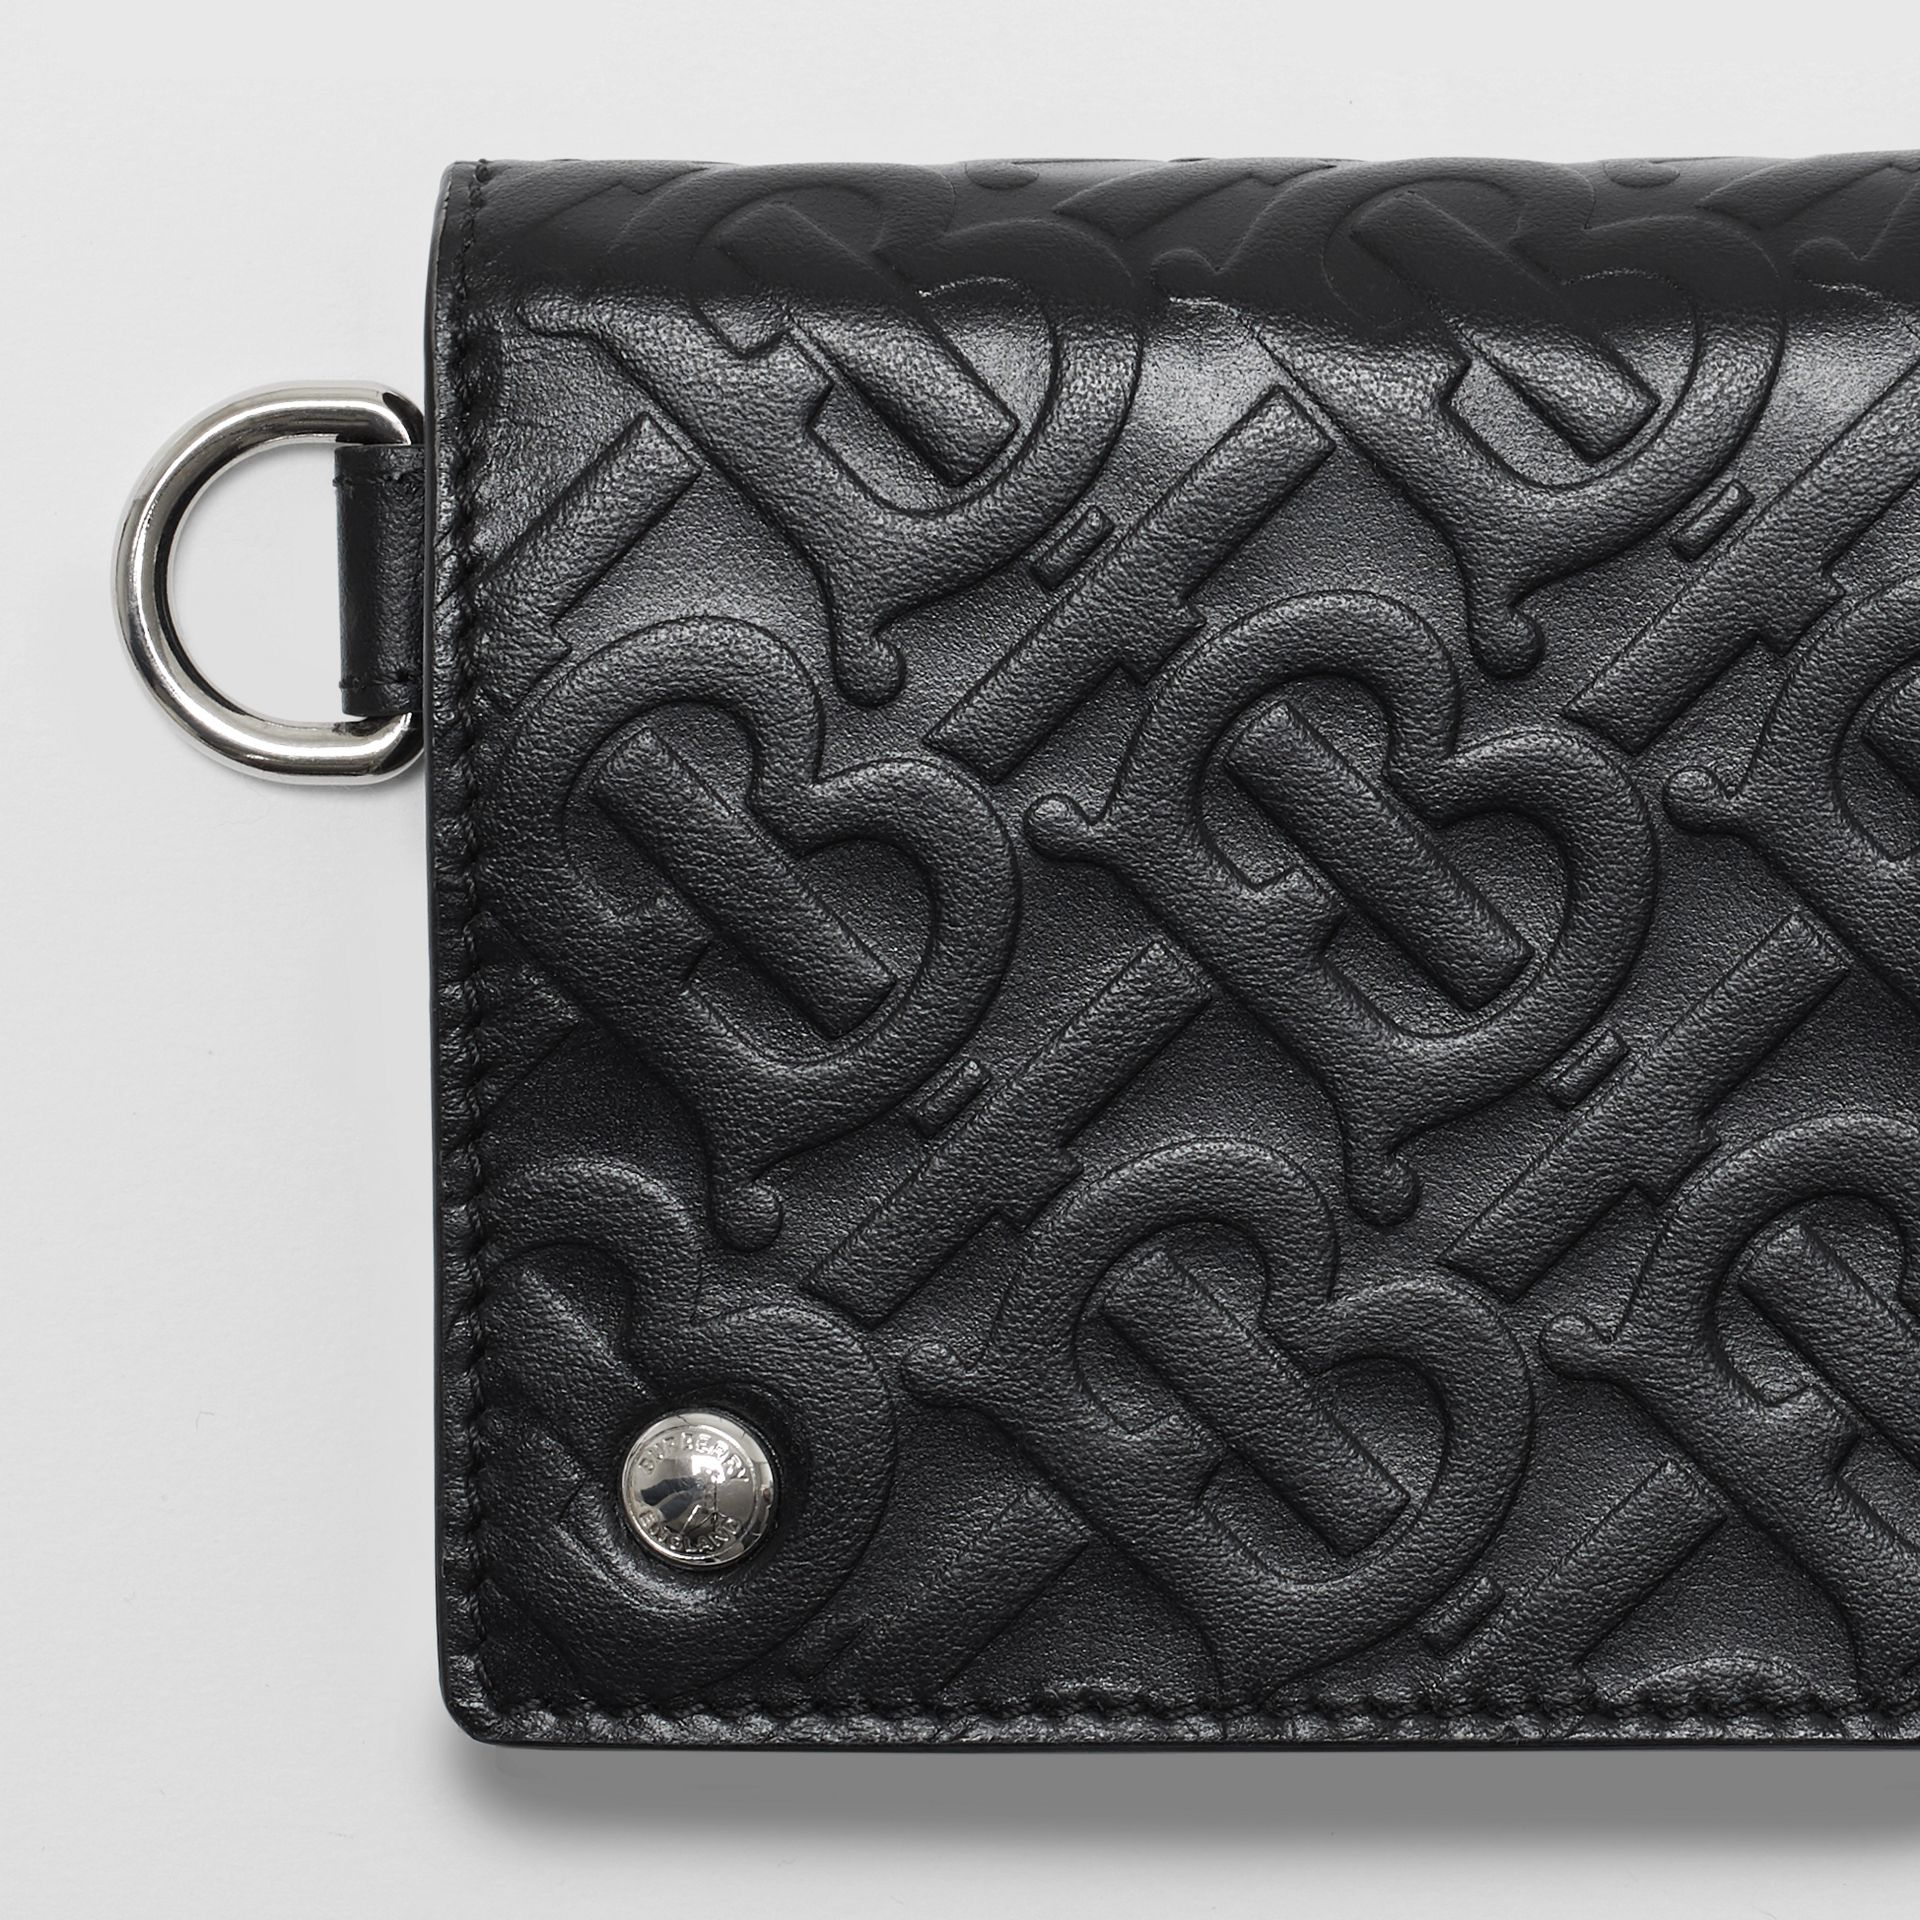 Monogram Embossed Leather Trifold Wallet in Black - Men | Burberry - gallery image 1